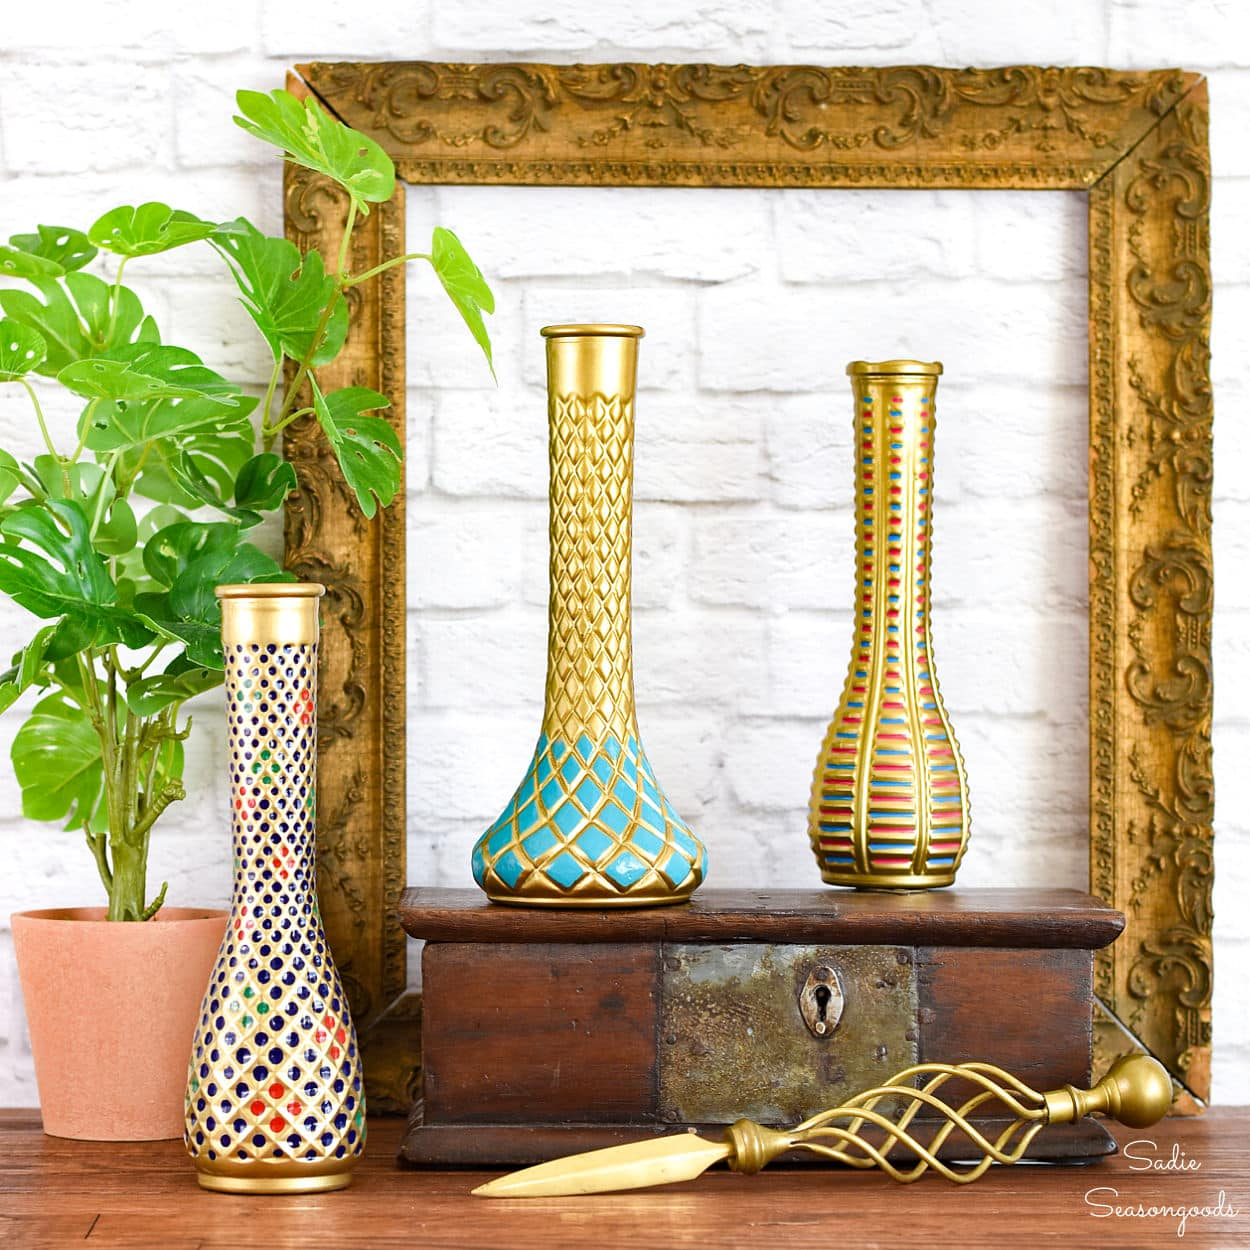 Faking a Cloisonne Vase for Thrift Home Decor